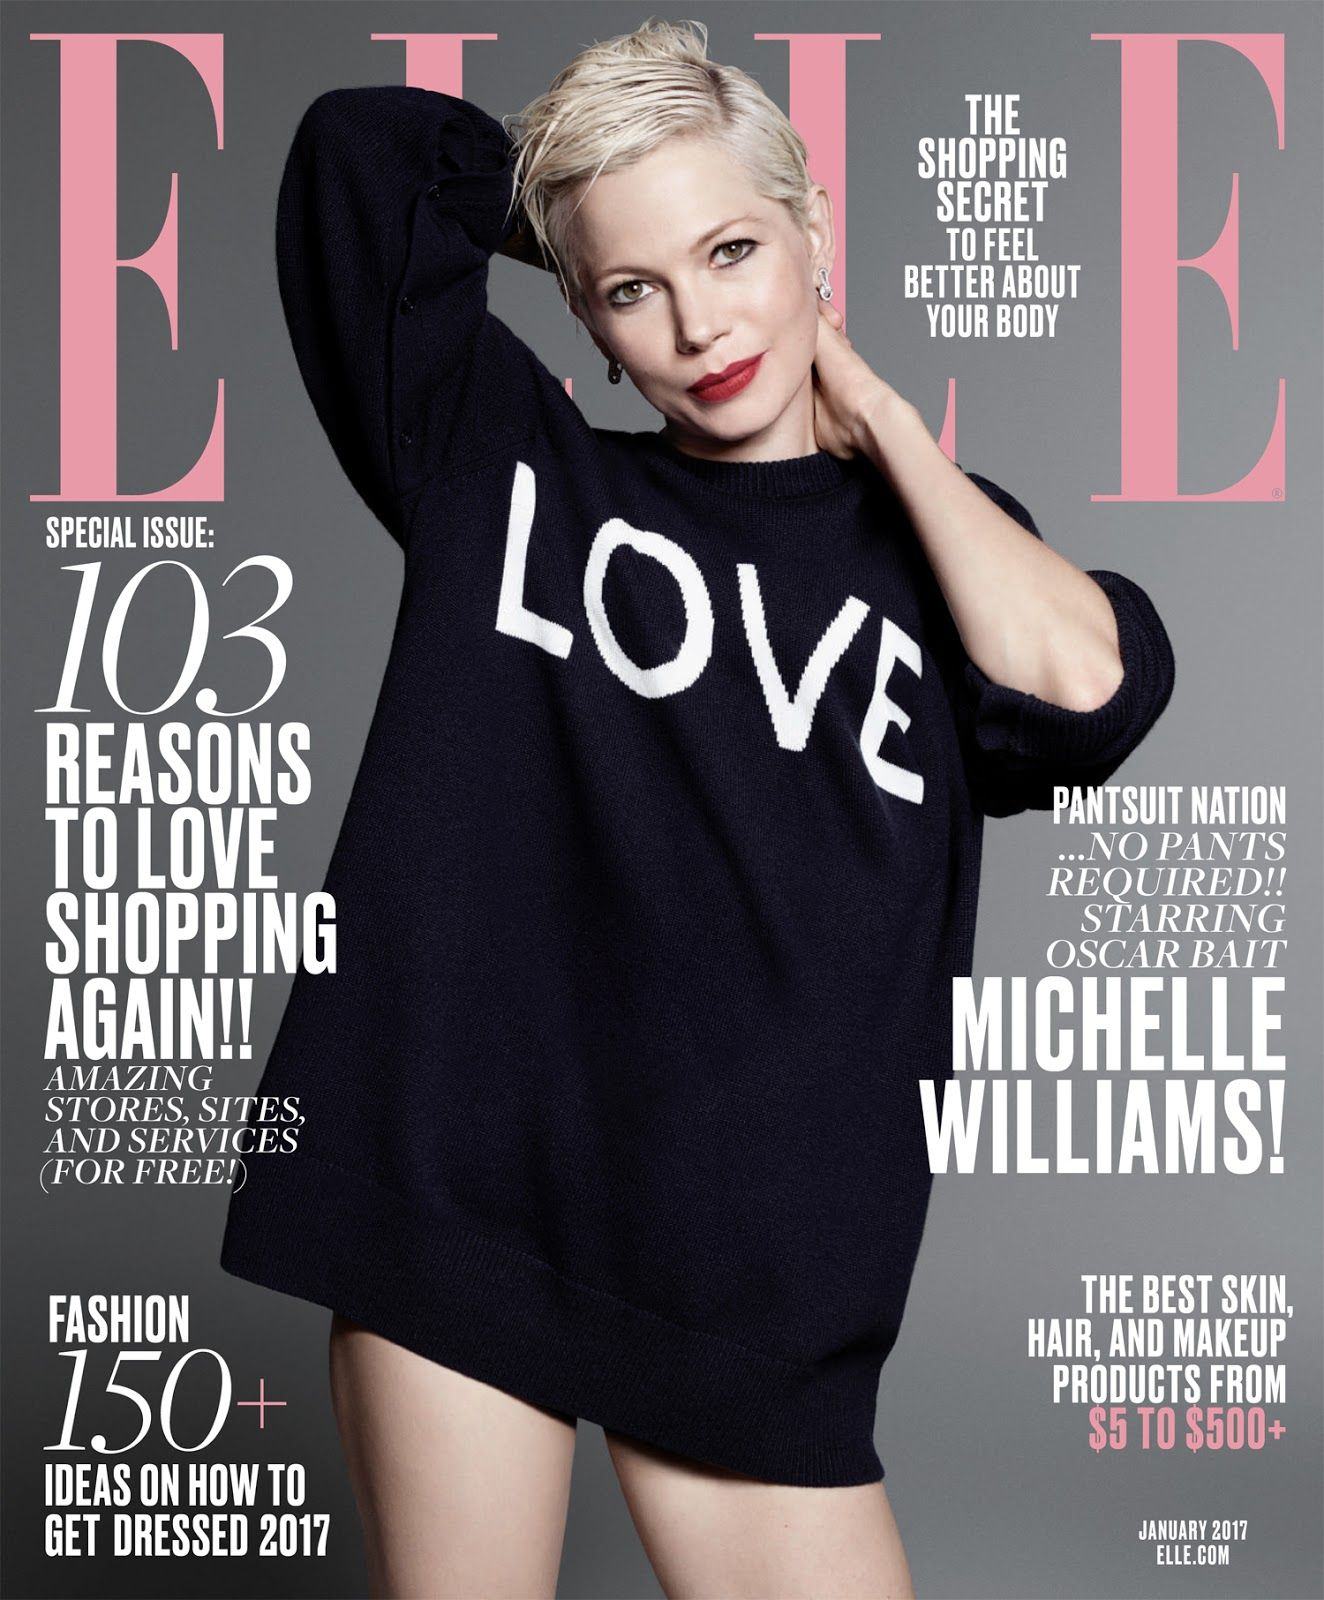 Ellecom Michelle Williams Stars As A Cover Girl For The January 2017 Issue